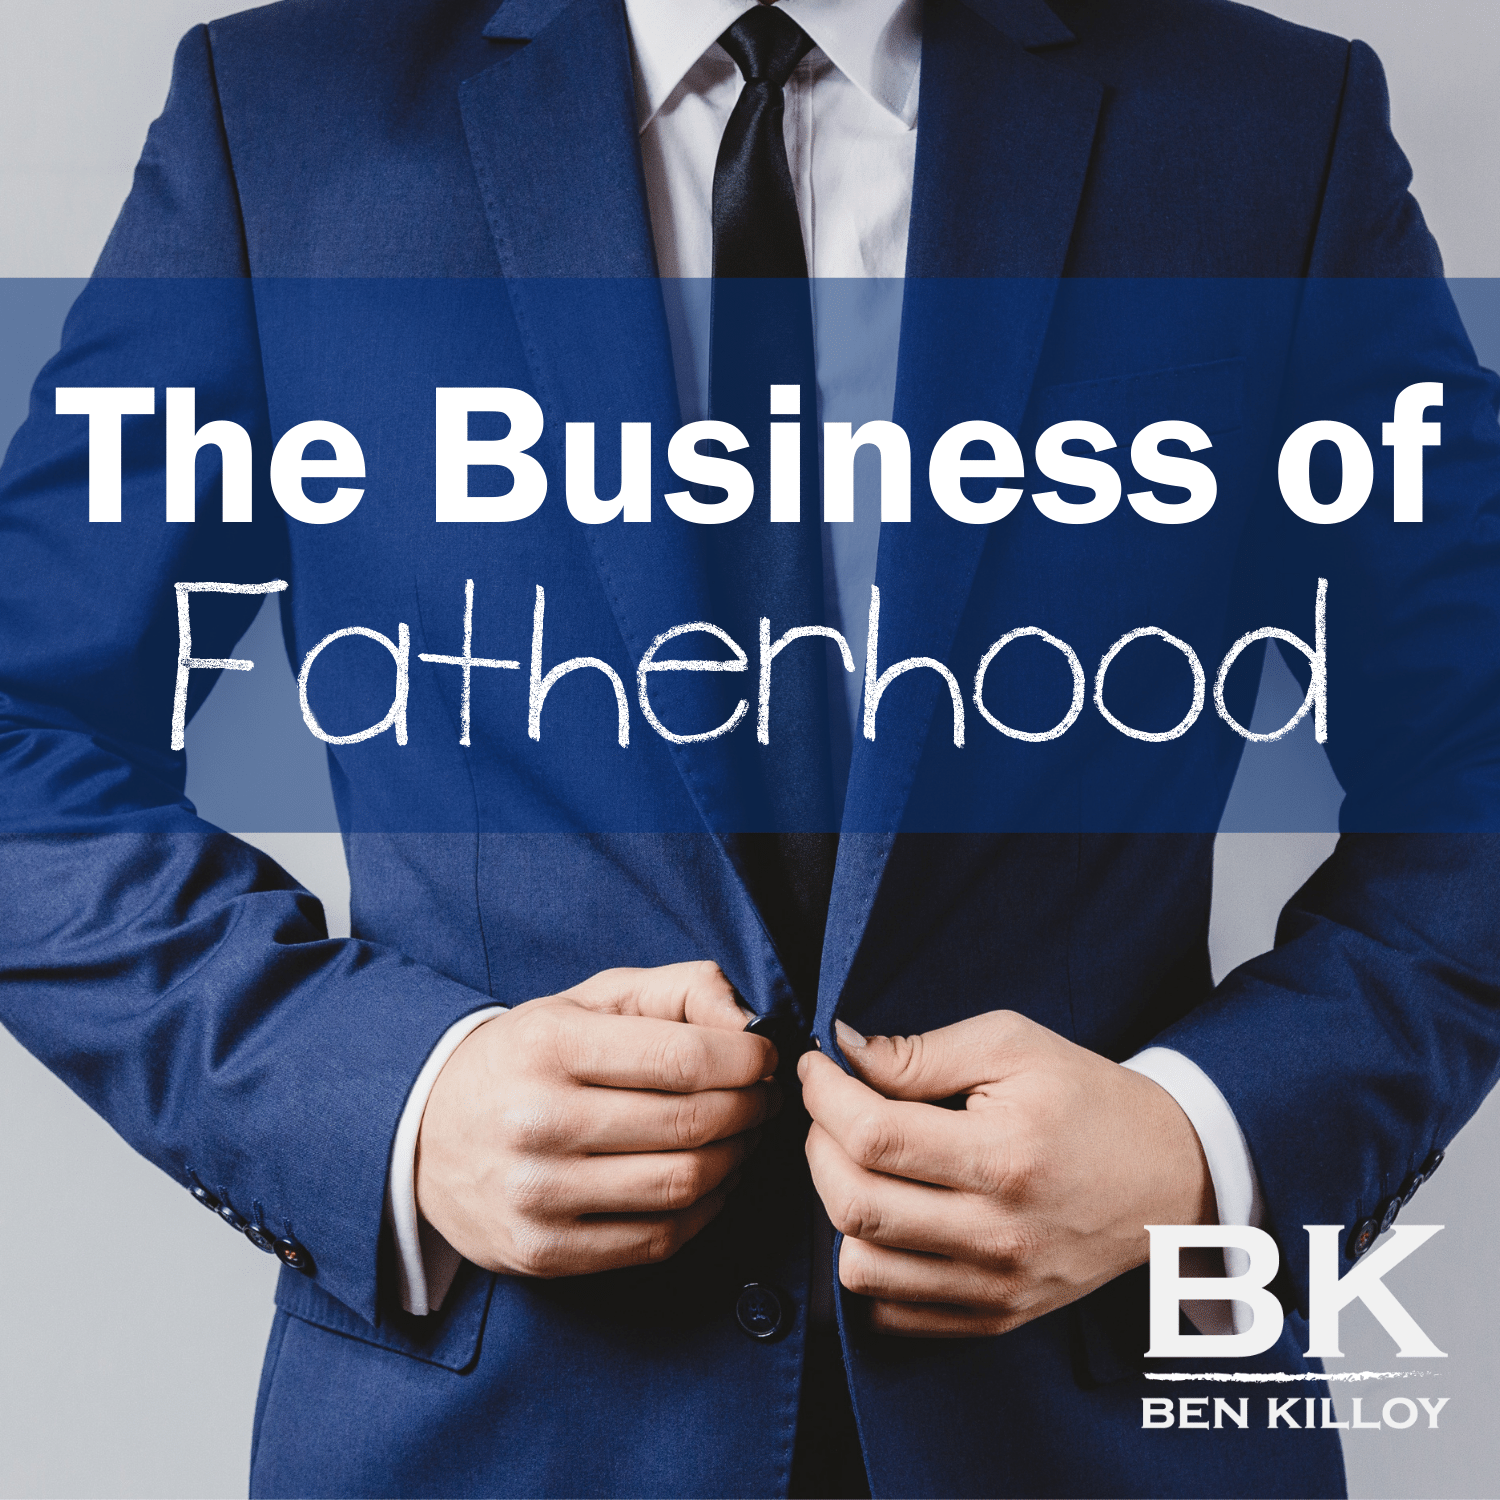 Artwork for podcast The Business of Fatherhood